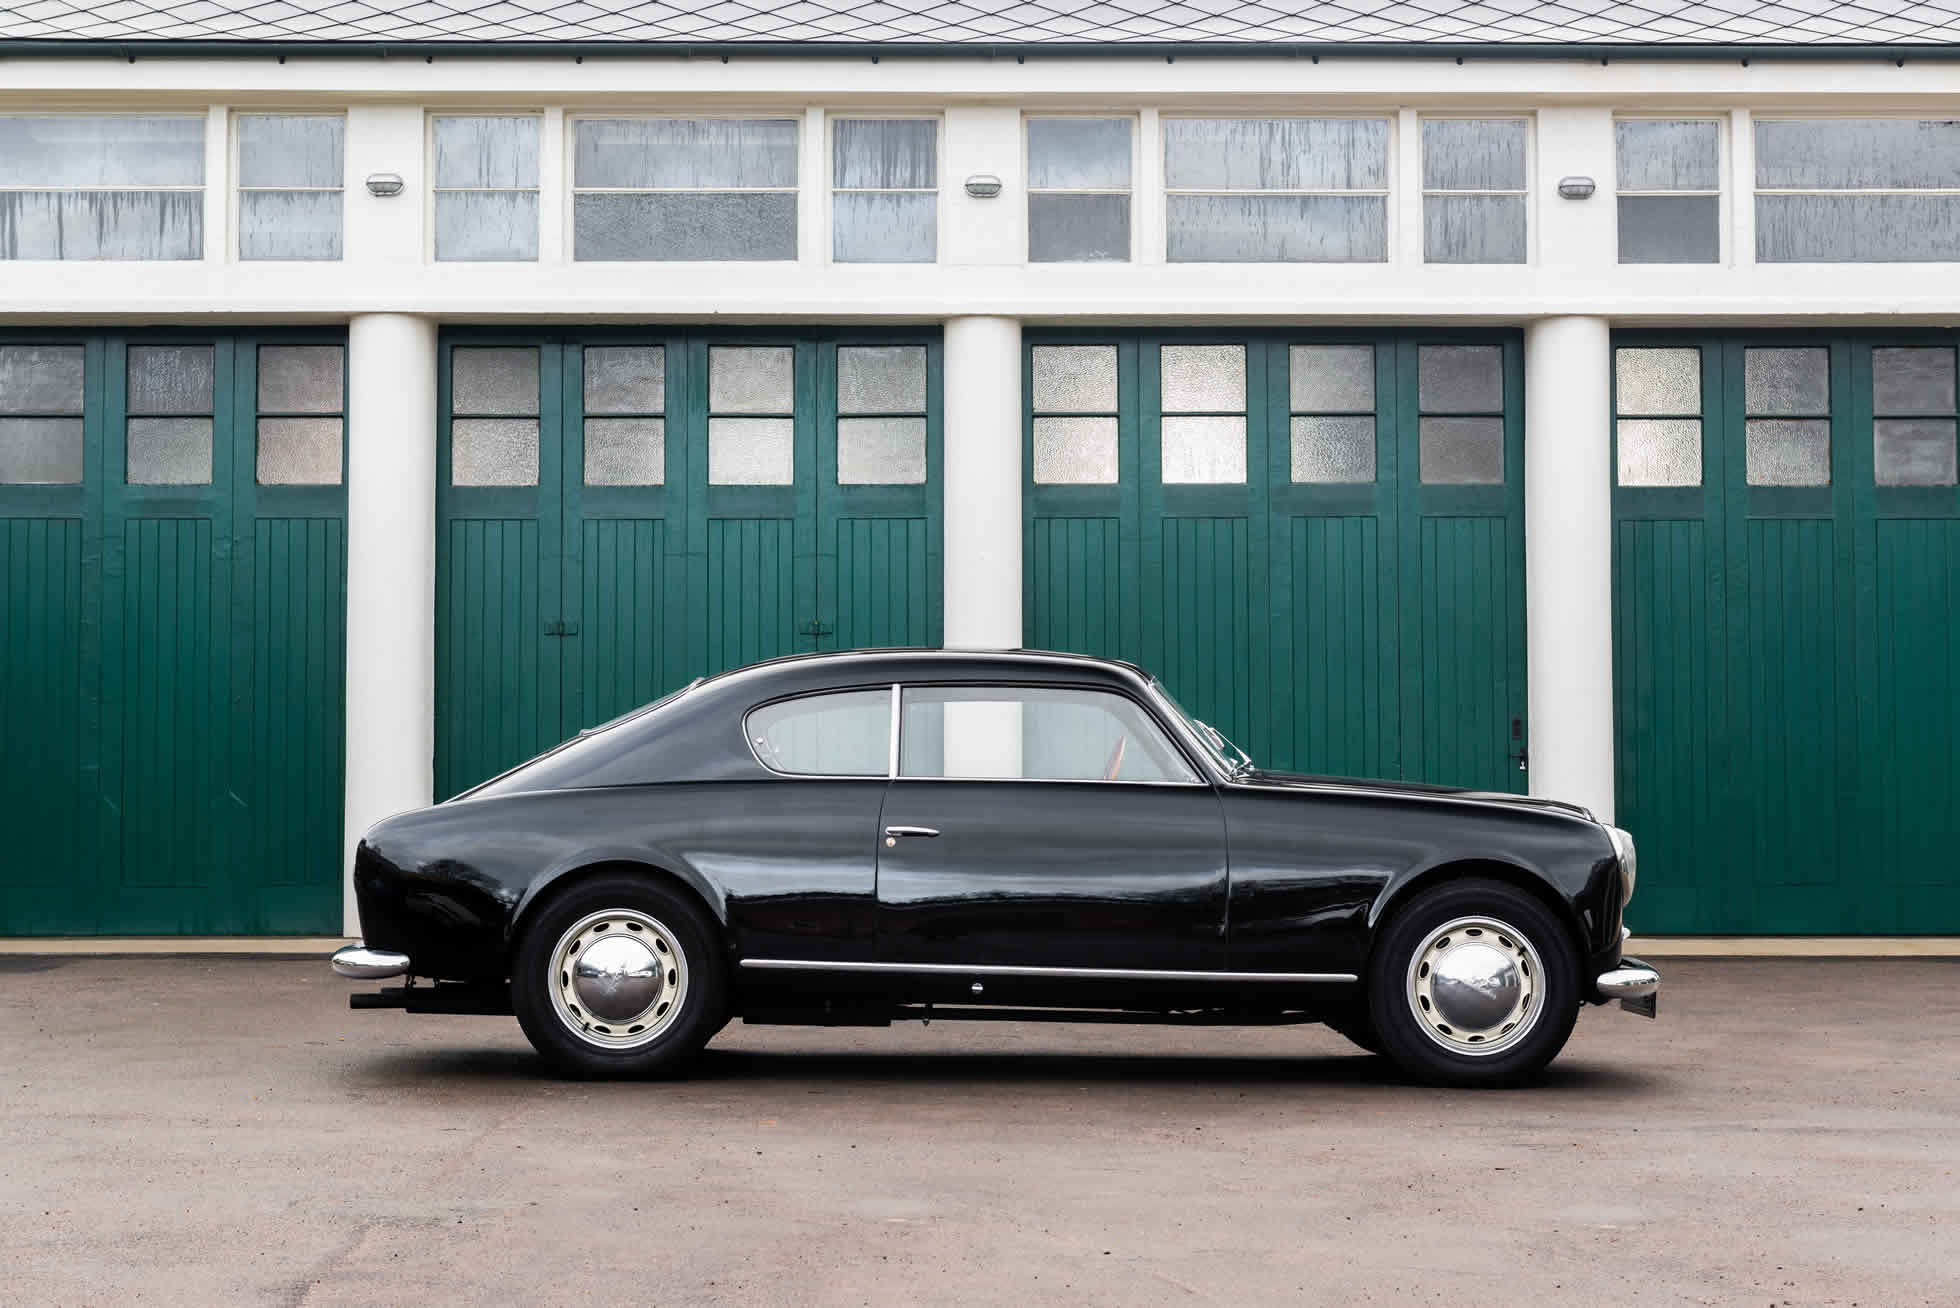 For Sale 1952 Lancia Aurelia B20 Series II Coupe side view